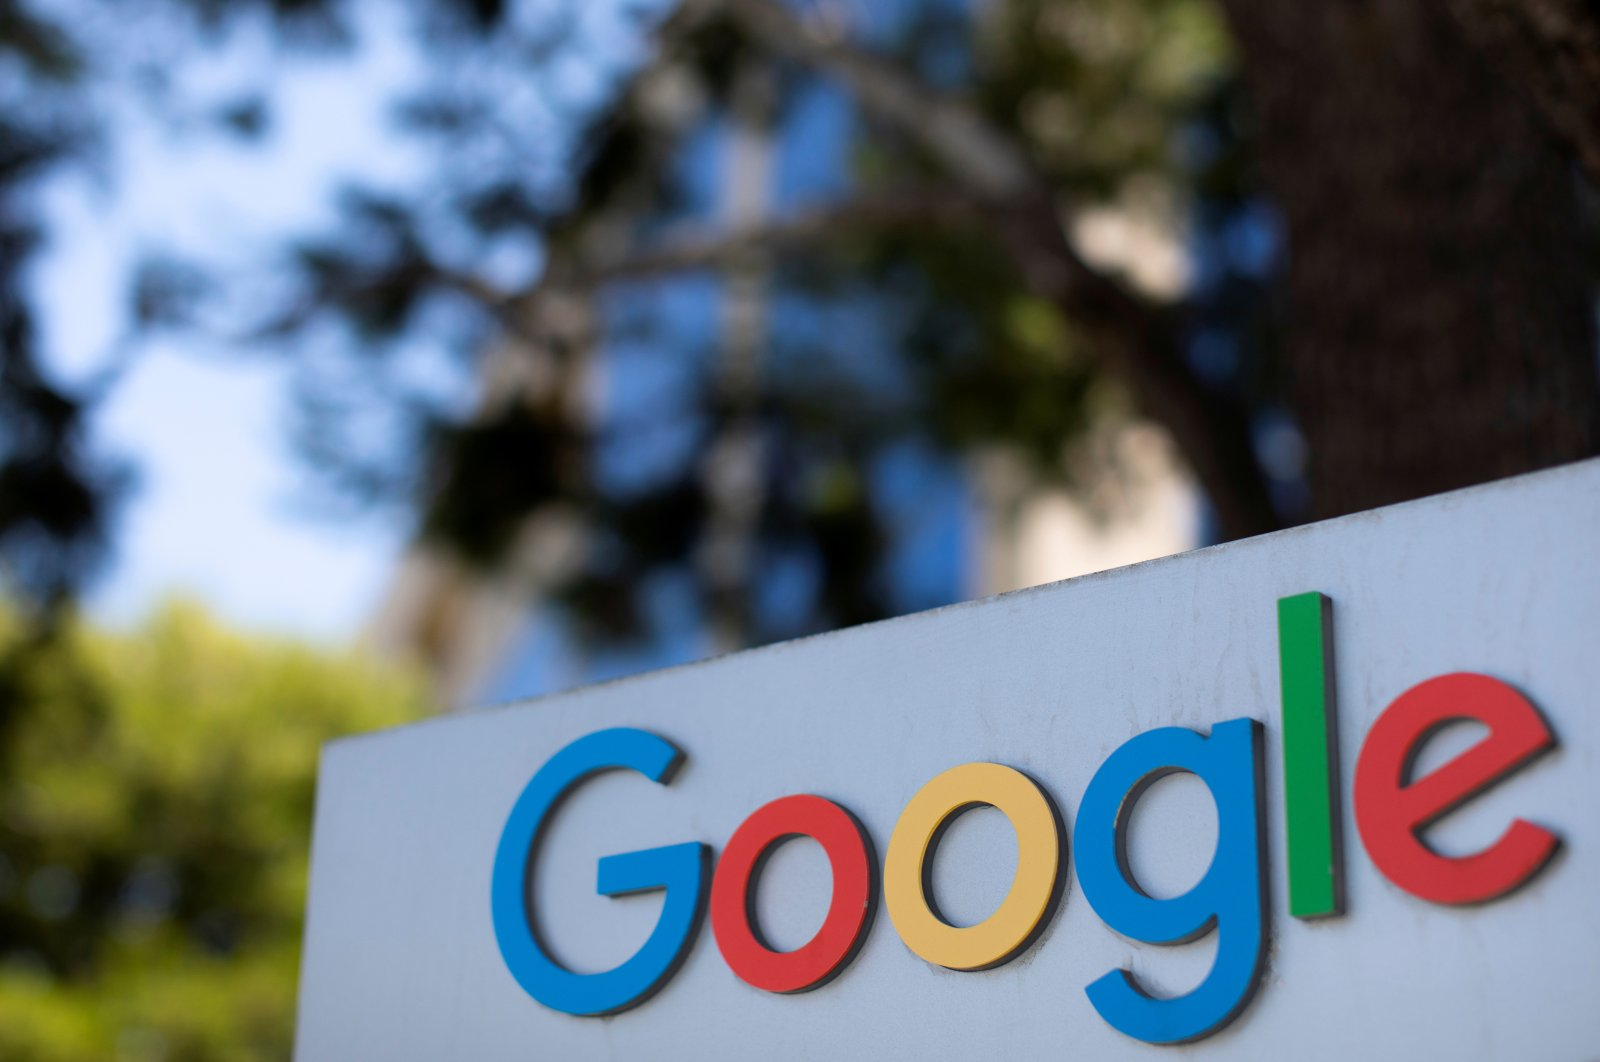 A Google logo is shown at one of the company's office complexes in Irvine, California, United States, July 27, 2020. (Reuters Photo)